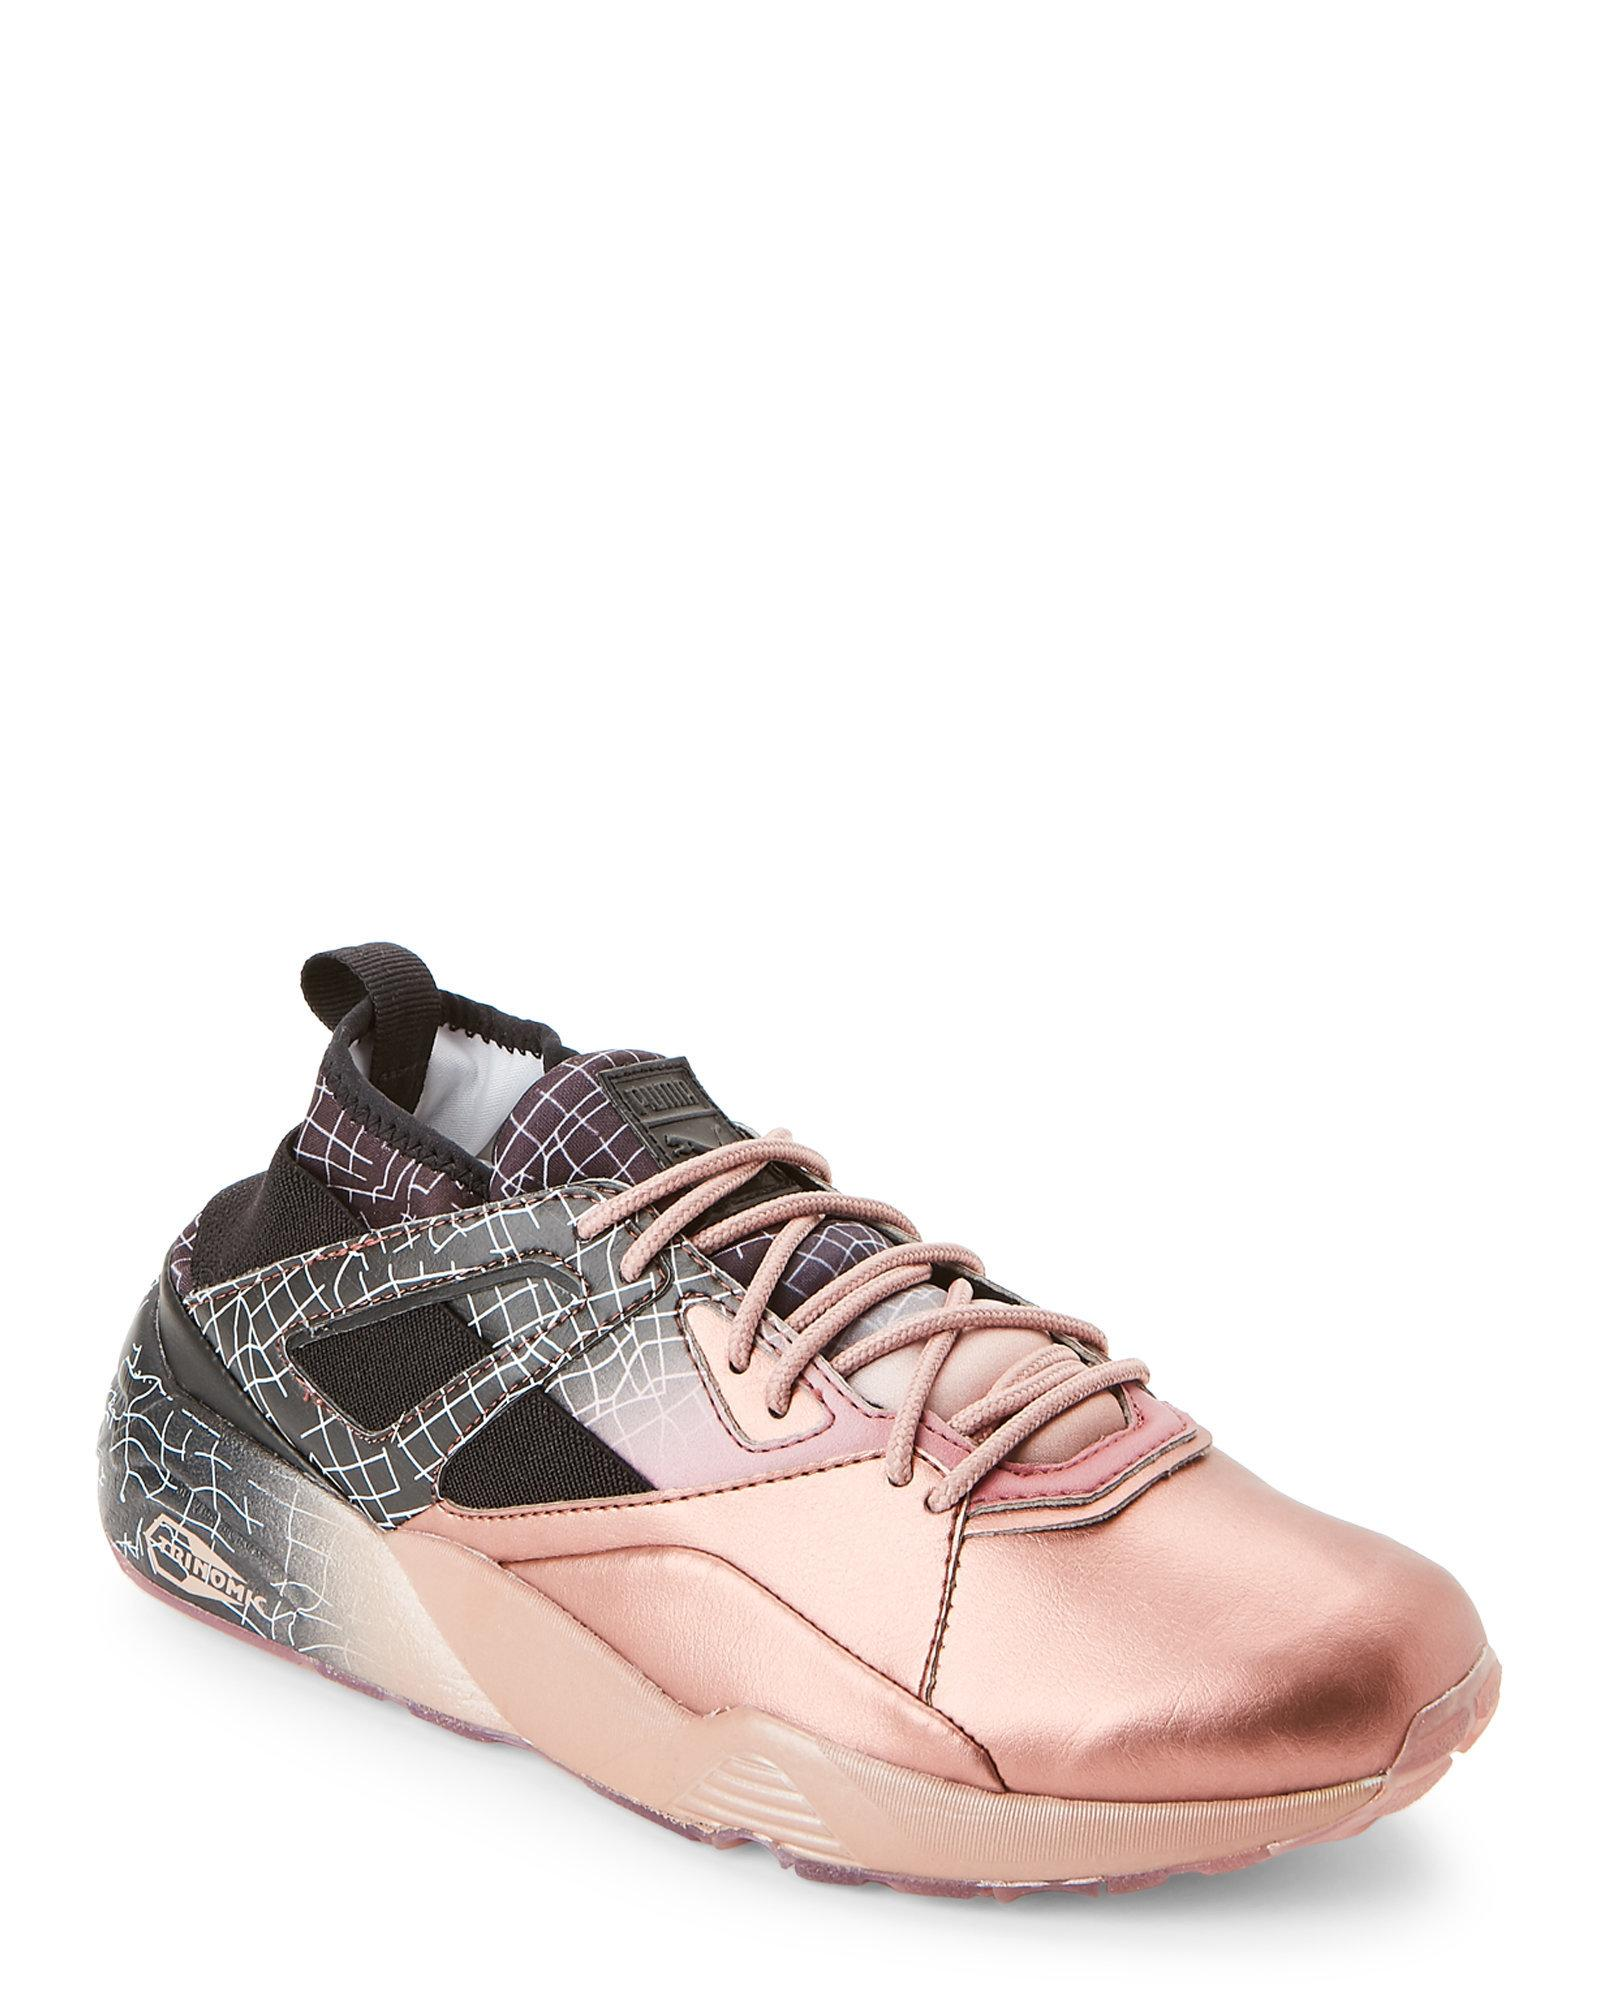 puma ignite rose gold